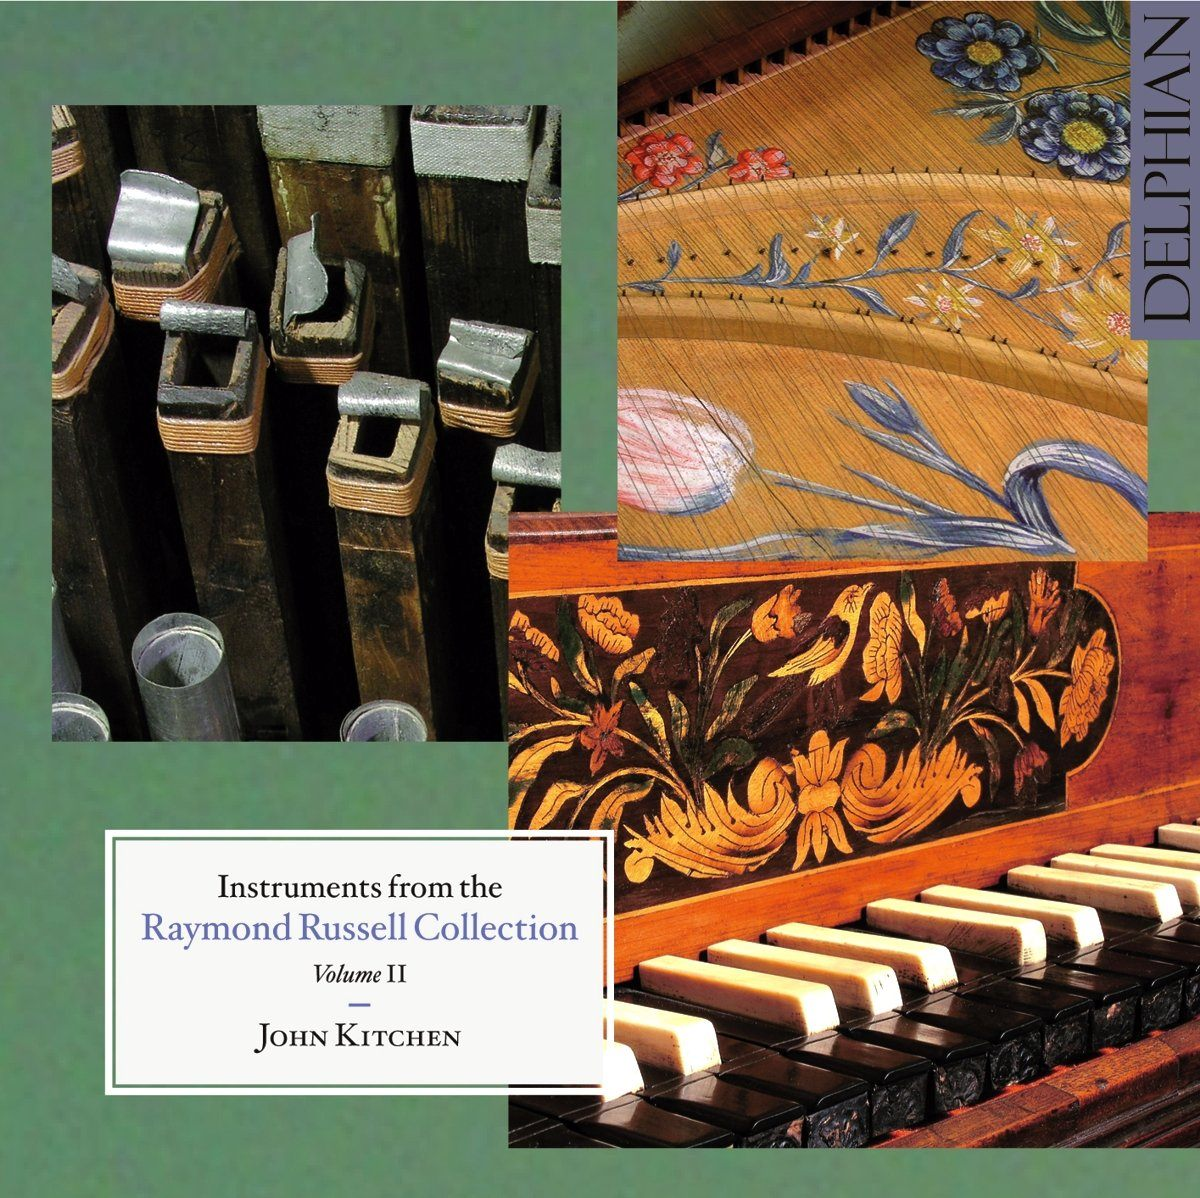 Instruments from the Russell Collection Vol II CD Delphian Records